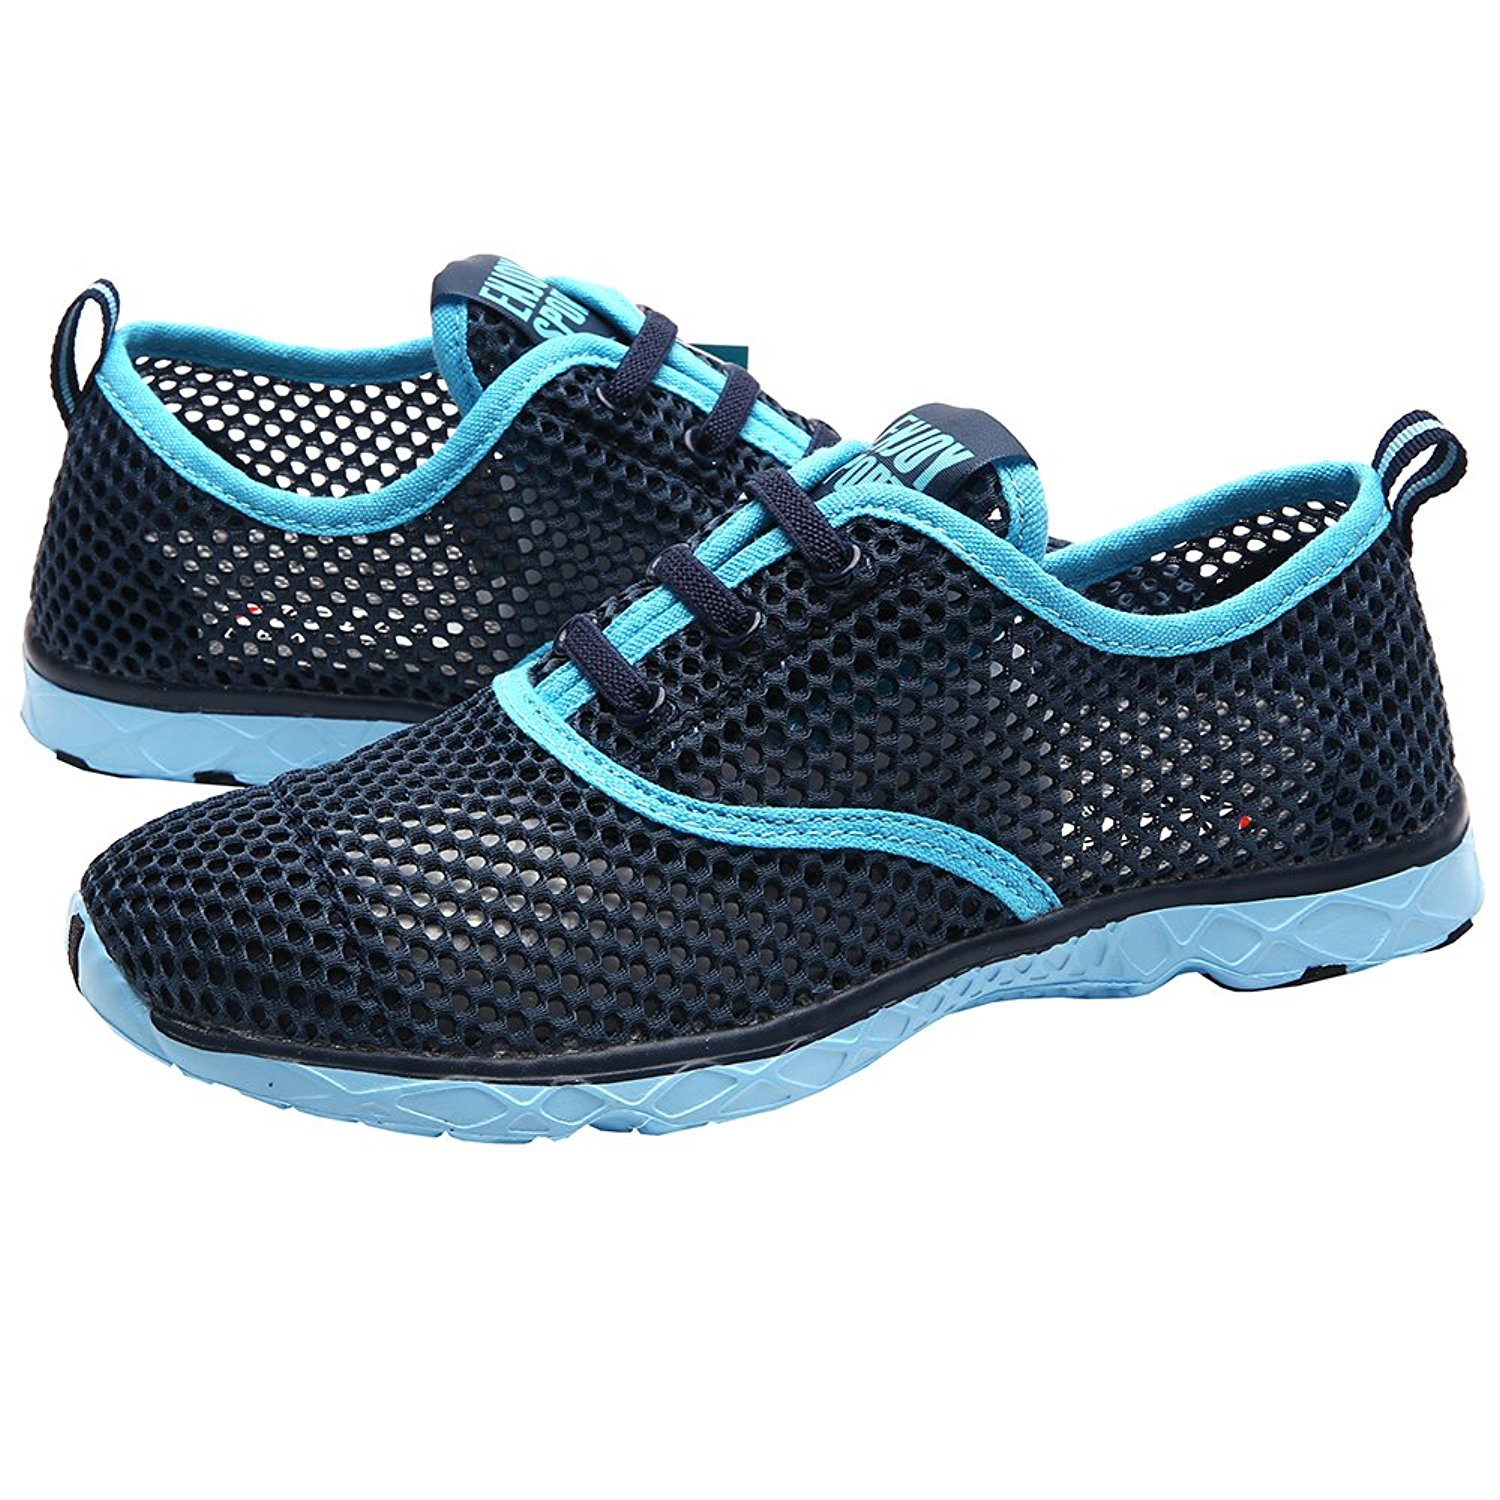 up to 65% off Aleader Womens Quick Drying Aqua Water Shoes ...